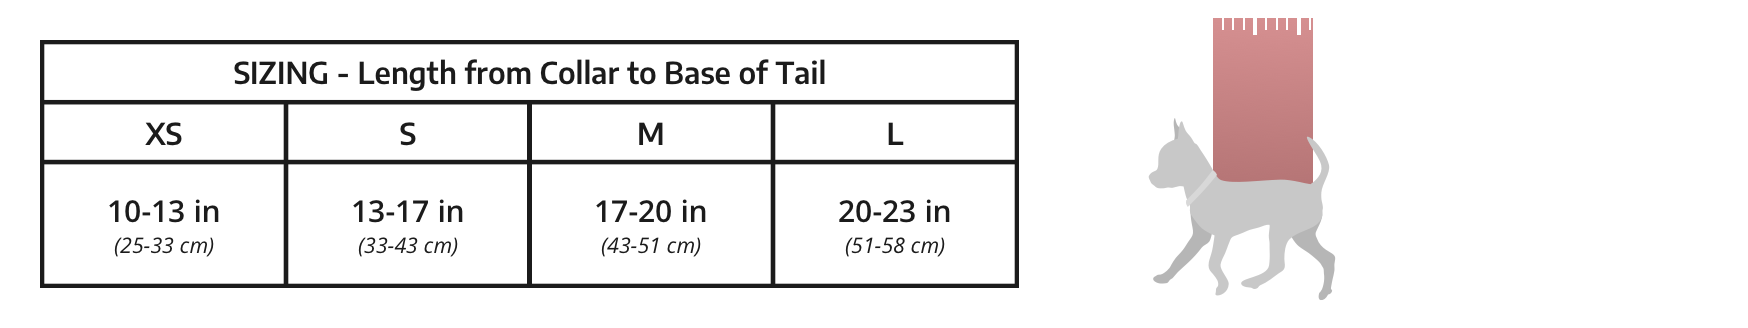 Sizing chart, measuring the length of your dog from its collar to the base of its tail. Extra Small, 10-13 inches. Small 13-17 inches. Medium 17-20 inches. Large 20-23 inches.